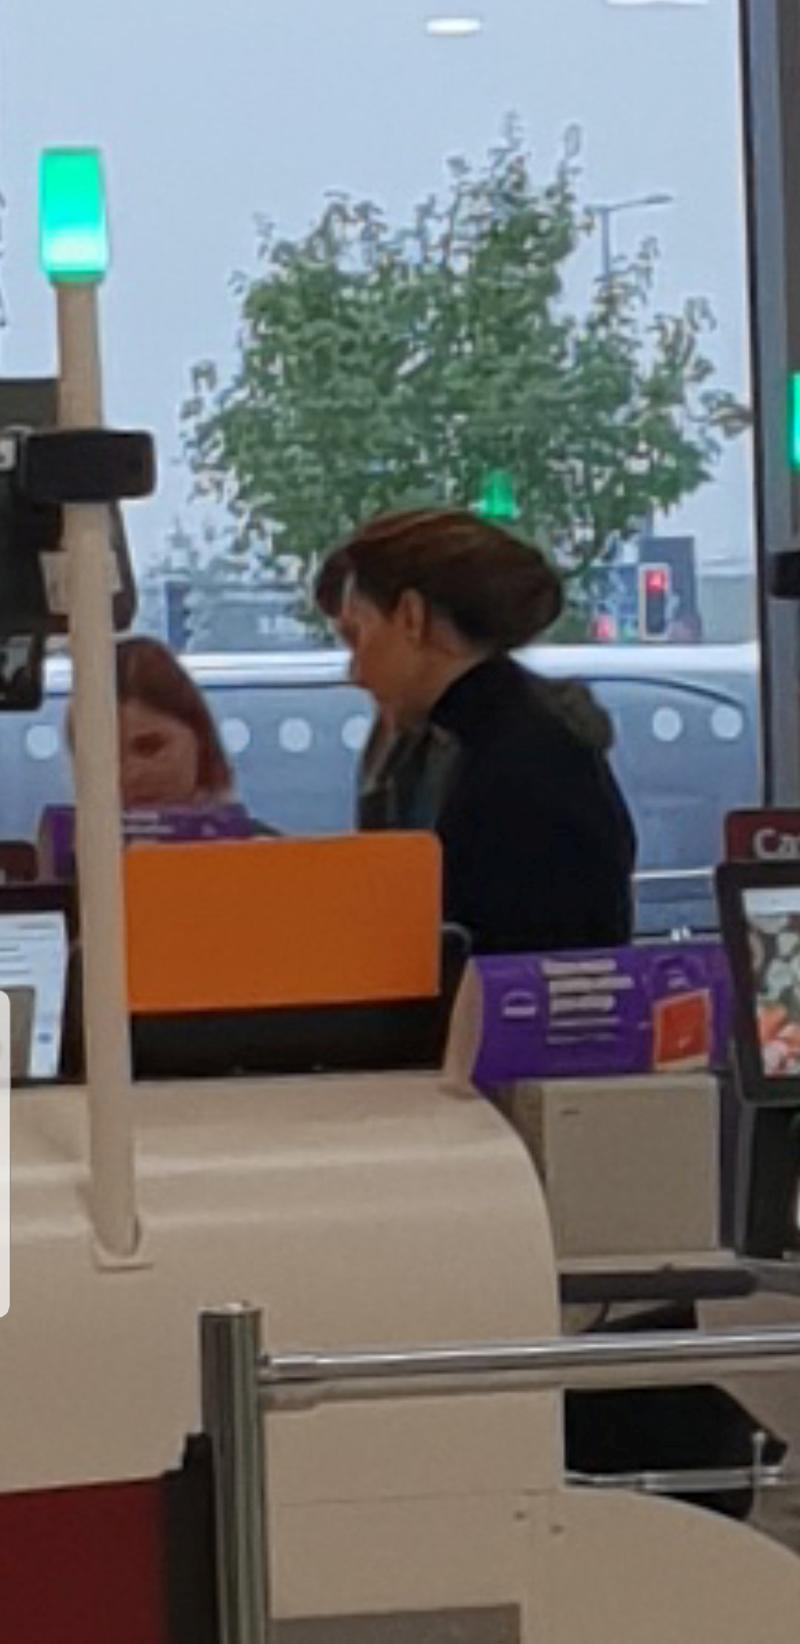 A photo of the Duchess of Cambridge at Sainsbury's supermarket in Norfolk, UK, buying Halloween 'bits' with son Prince George and daughter Princess Charlotte